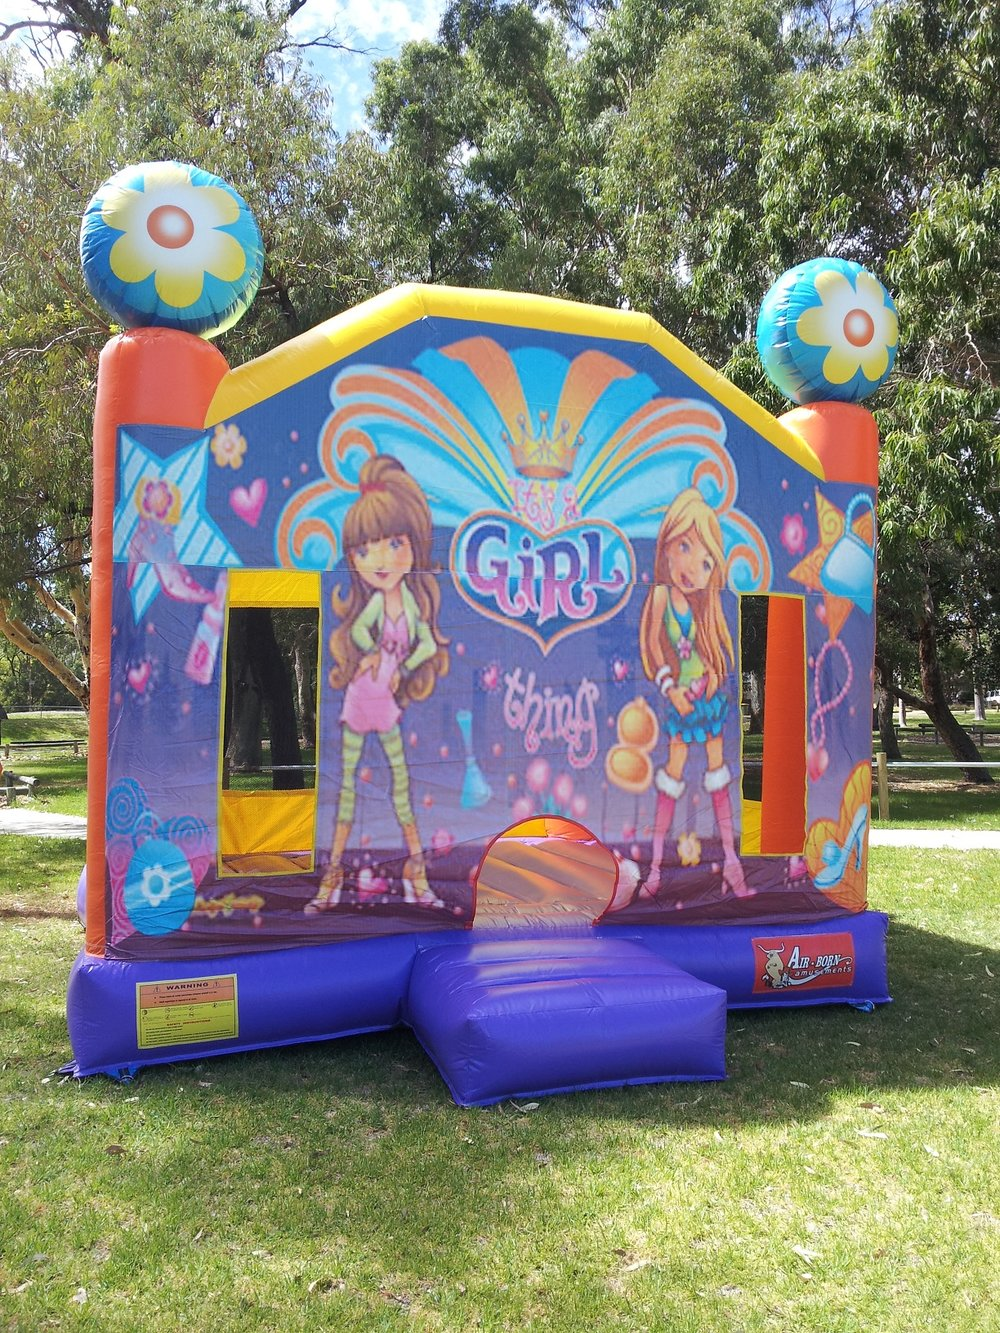 - $250 AS PART OF OUR DOUBLE BOUNCE PACKAGE DEALORHIRE FOR FREE WITH OUR TRIPLE BOUNCE PACKAGE DEAL